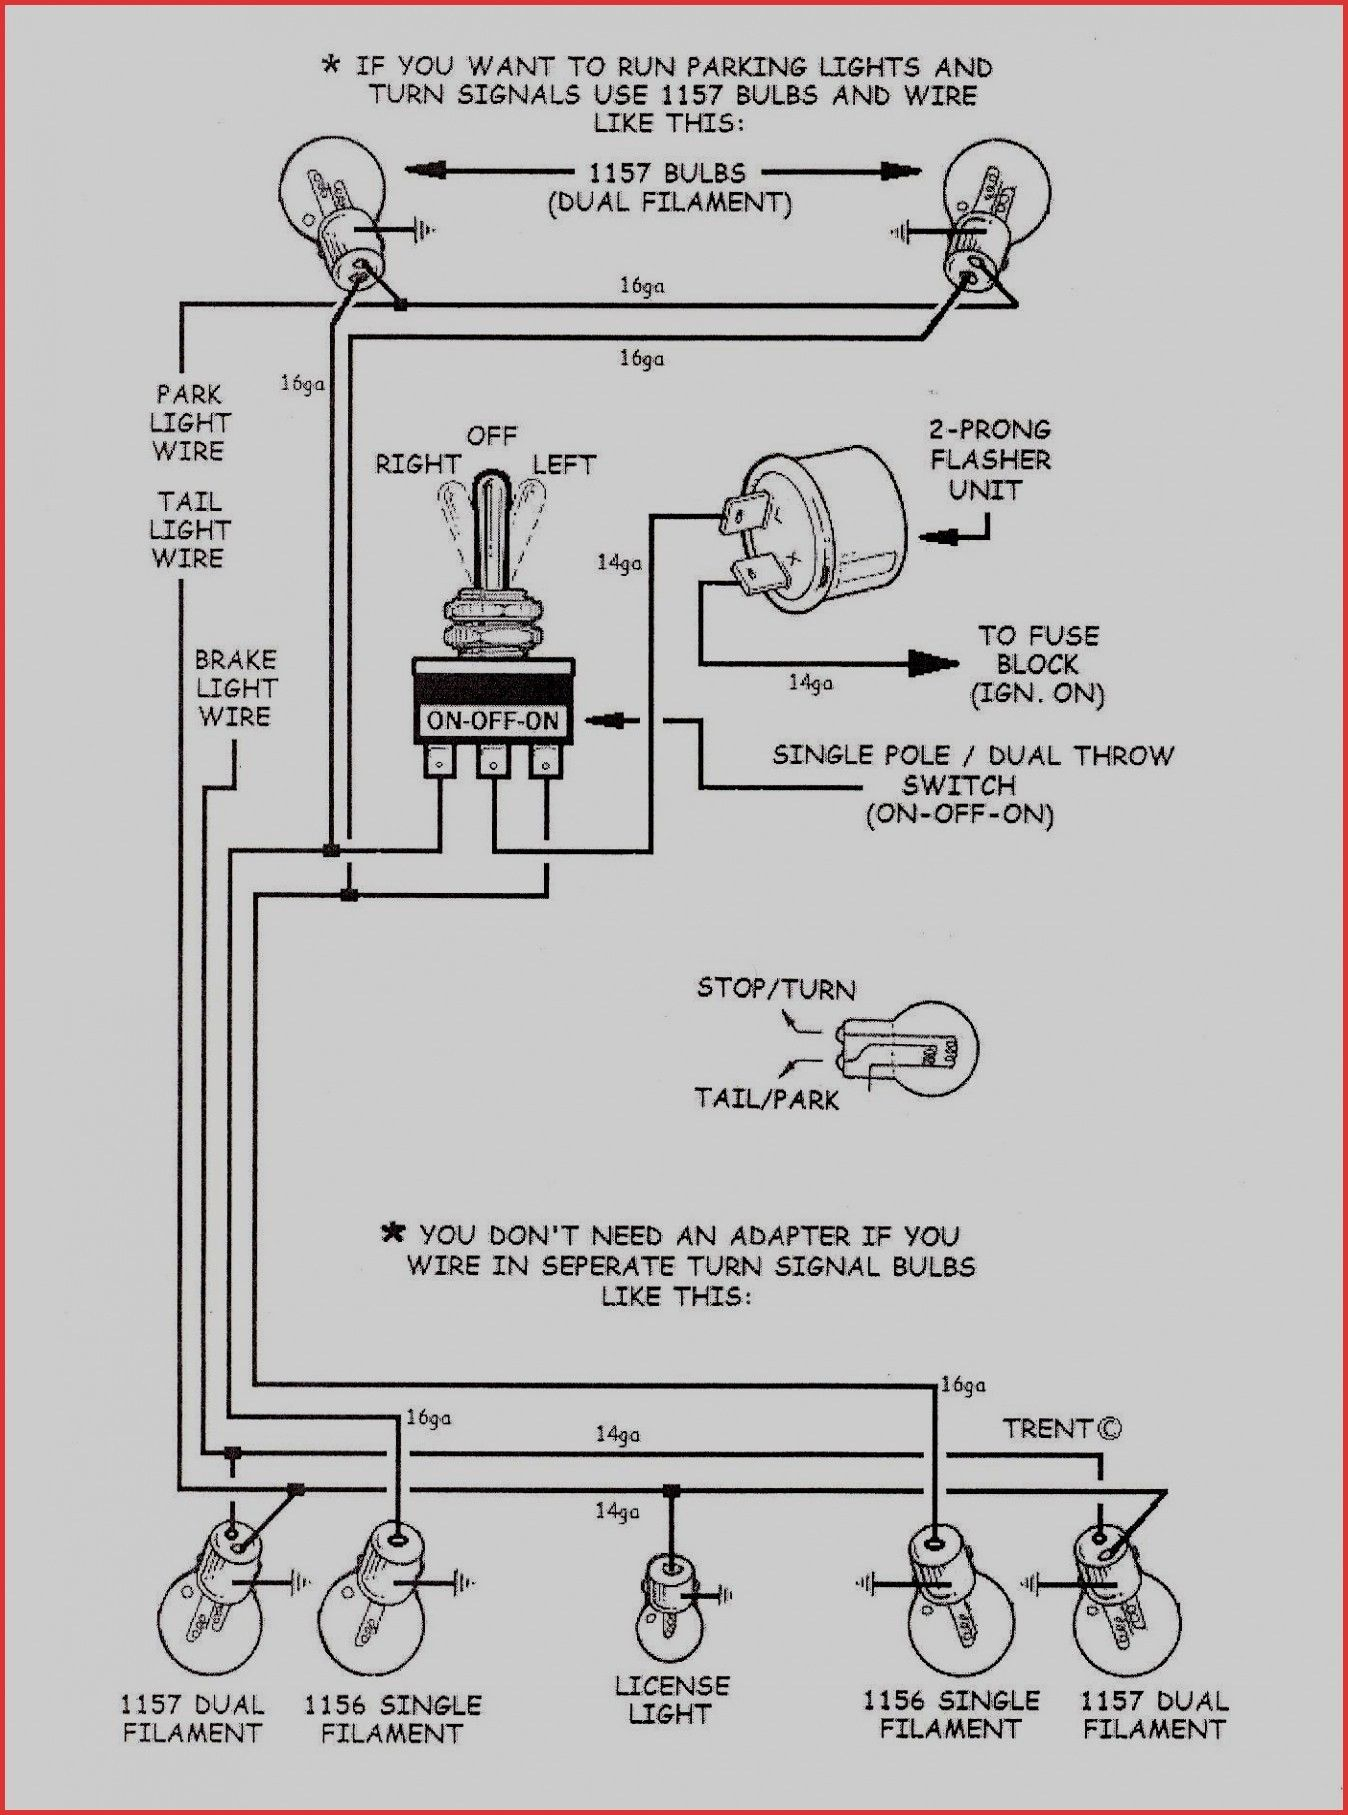 Unique Wiring Diagram 3 Pin Plug Australia #diagramsample